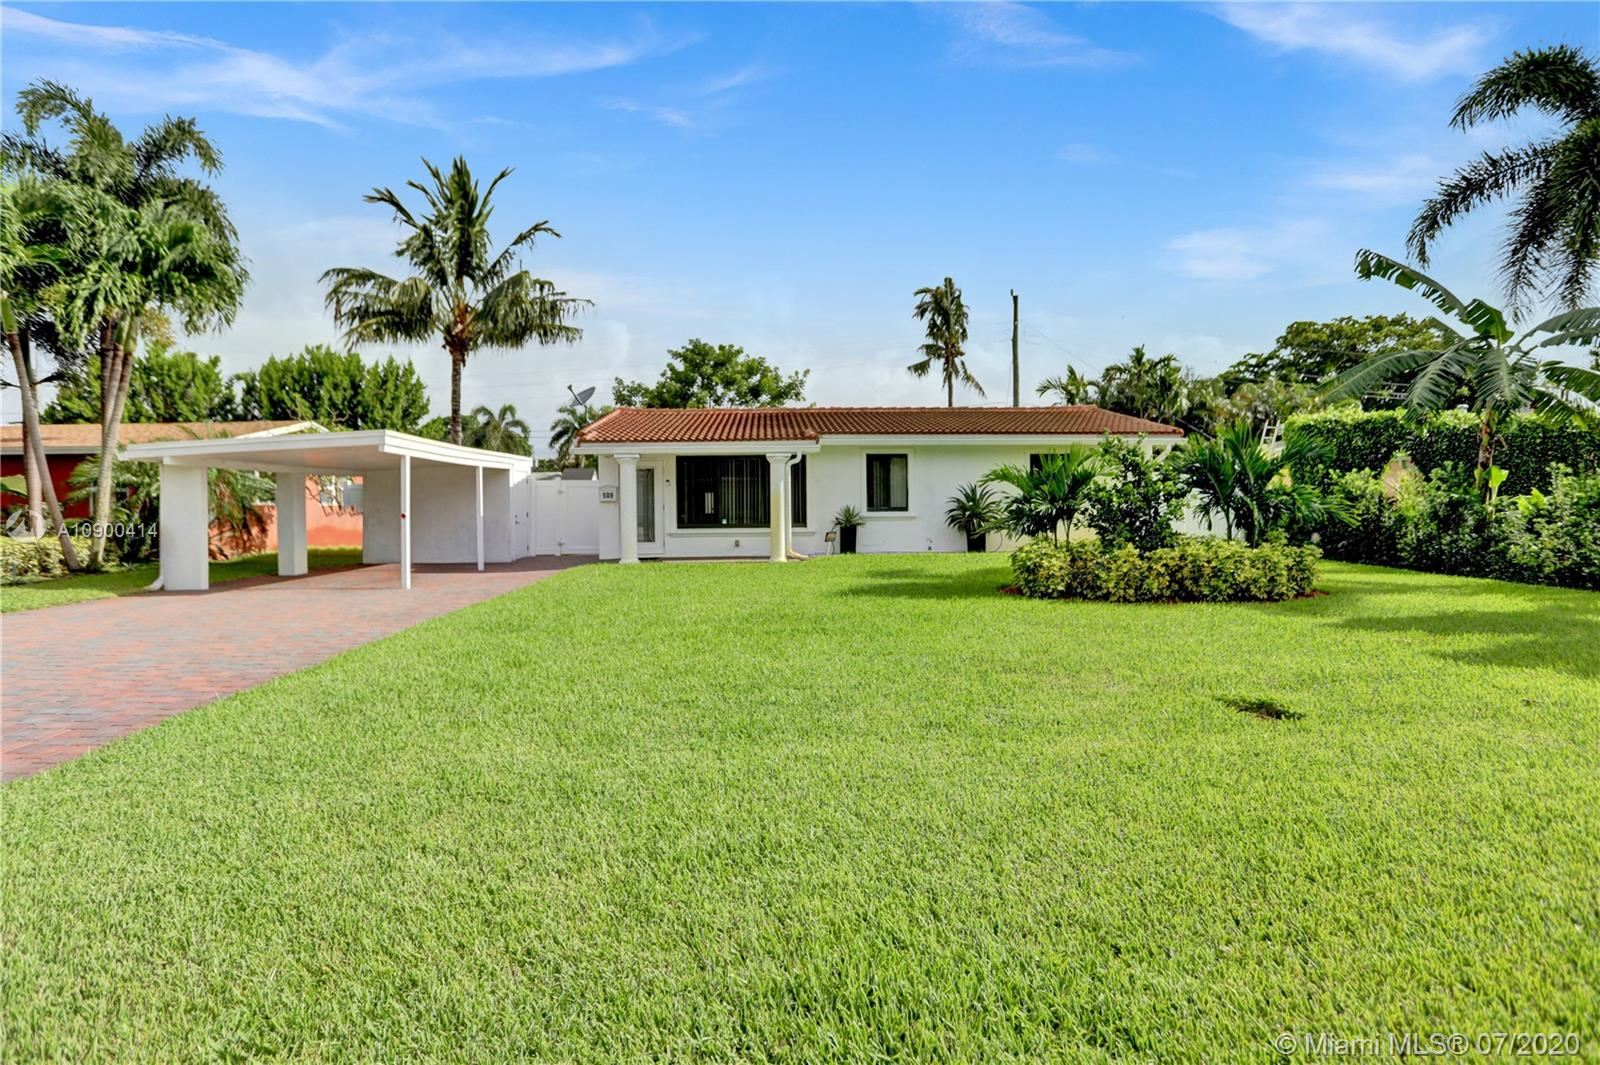 509 NE 27th Dr, Wilton Manors, FL 33334 - #: A10900414